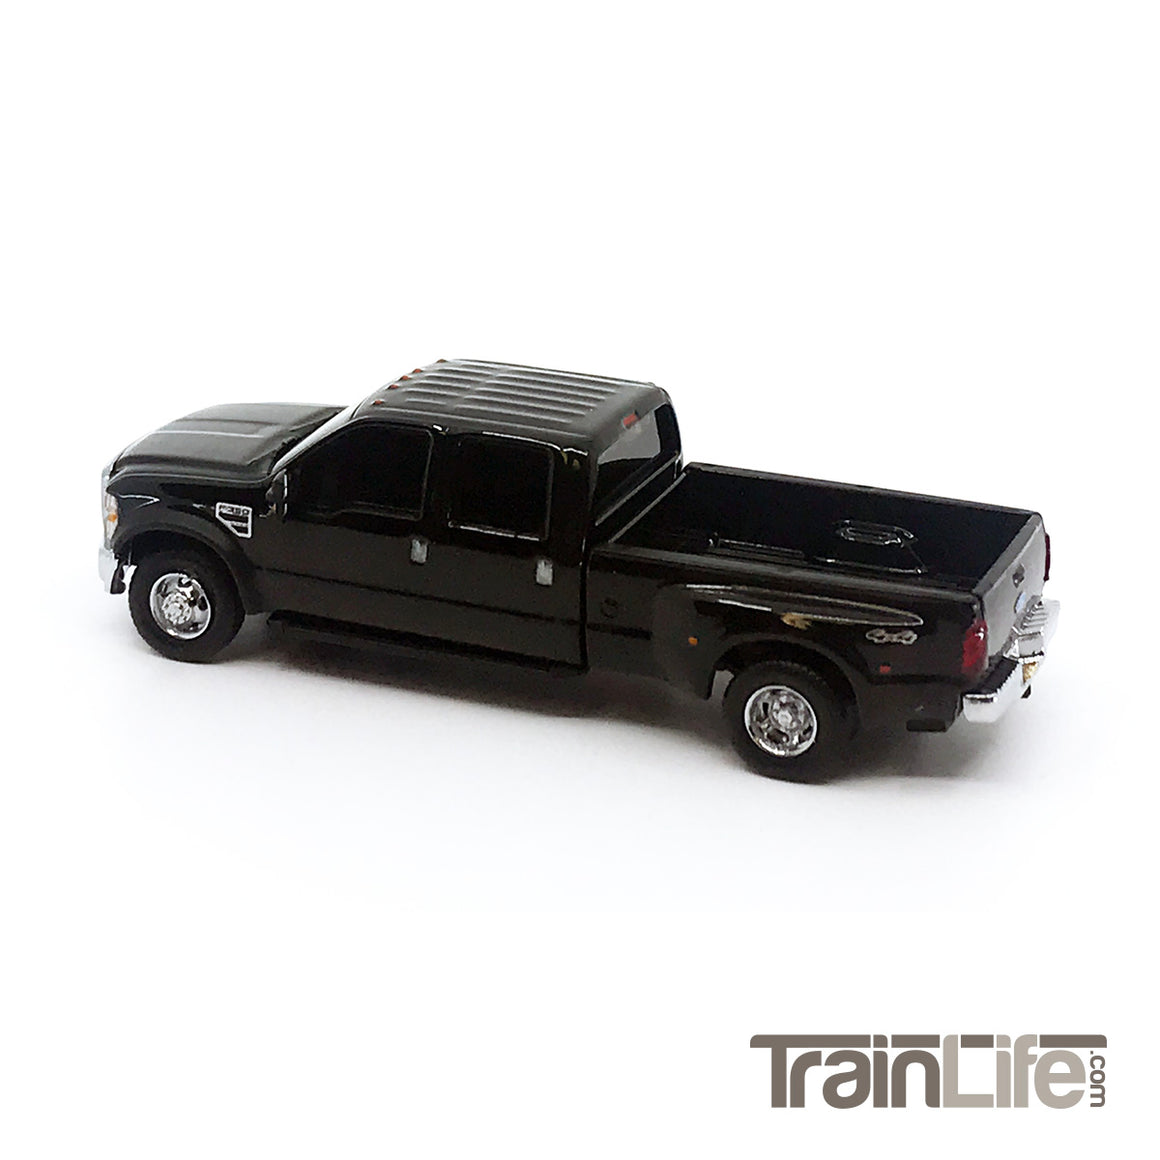 HO Scale: Lighted Ford F350 Crew Cab Dually Truck - Black